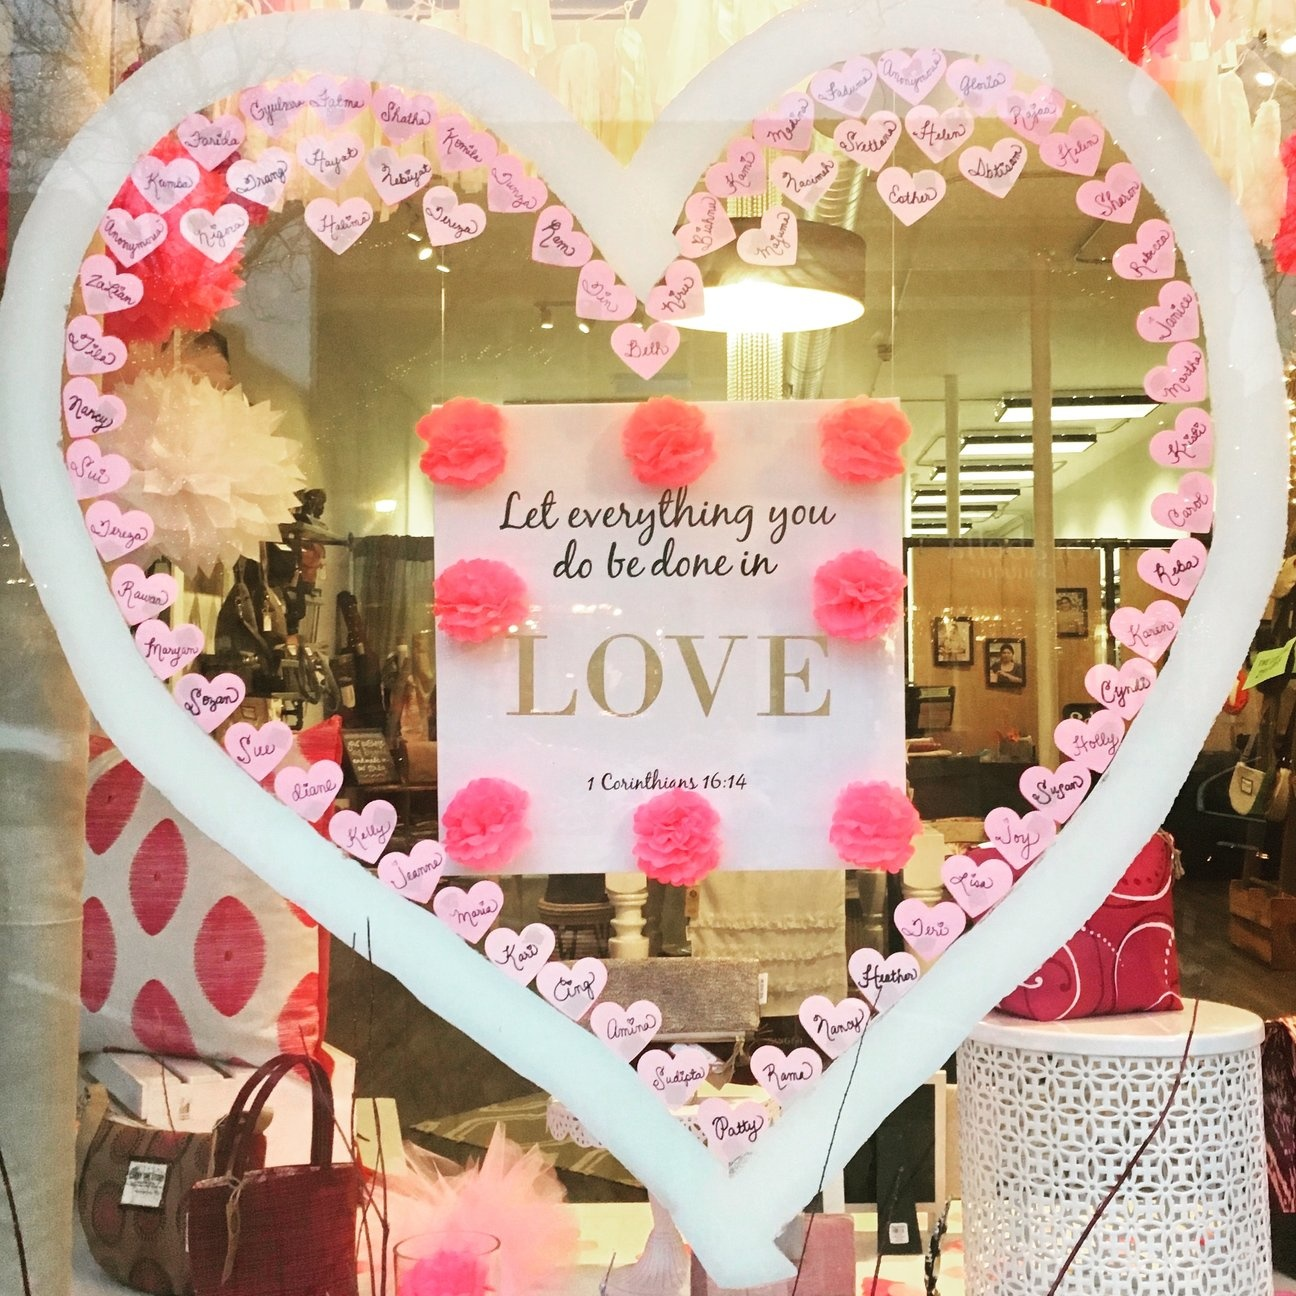 Send a Valentine to Re:new Artisans & New Students